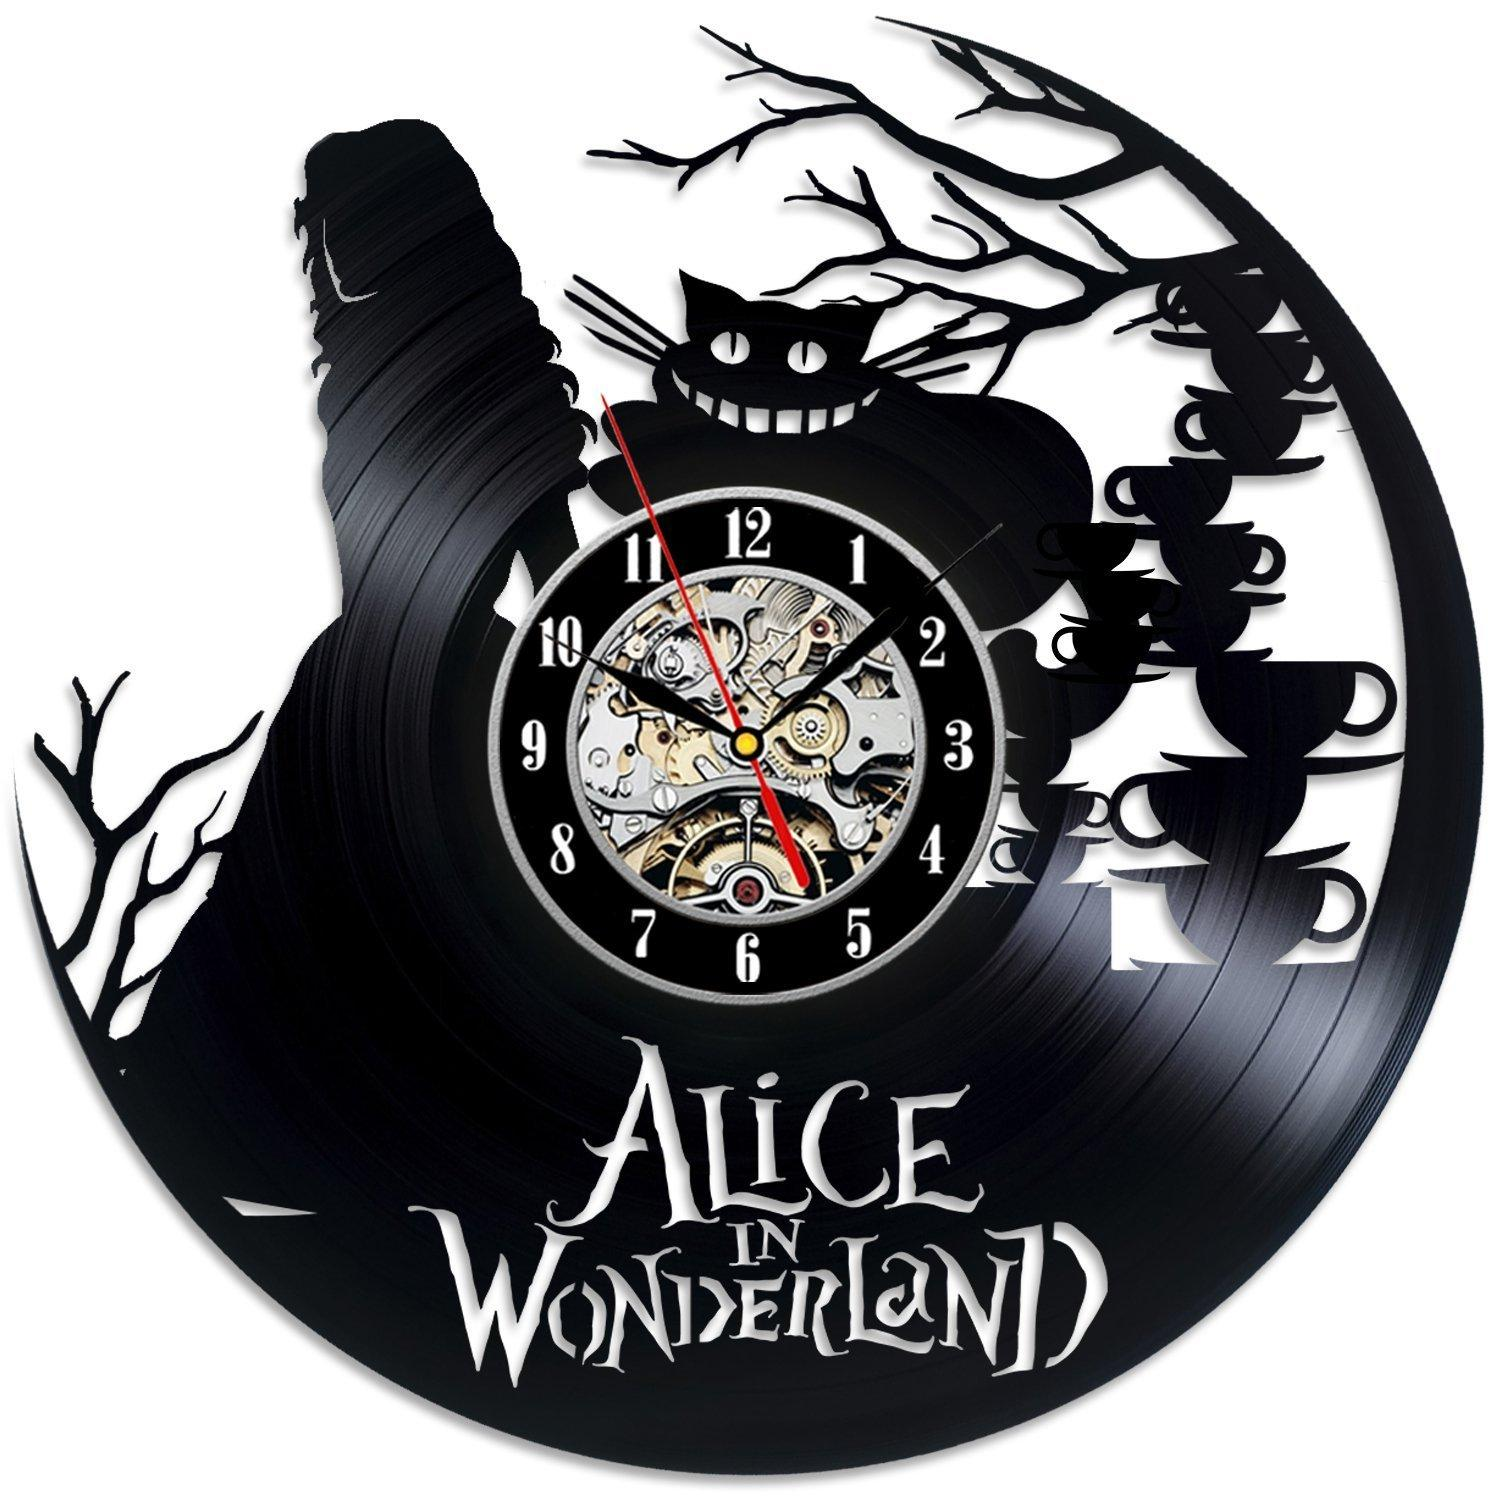 Alice in wonderland vinyl record wall clock decorate your home alice in wonderland vinyl record wall clock decorate your home with modern art gift for kids girls and boys wood clock wood clocks from xsj20142014 amipublicfo Choice Image